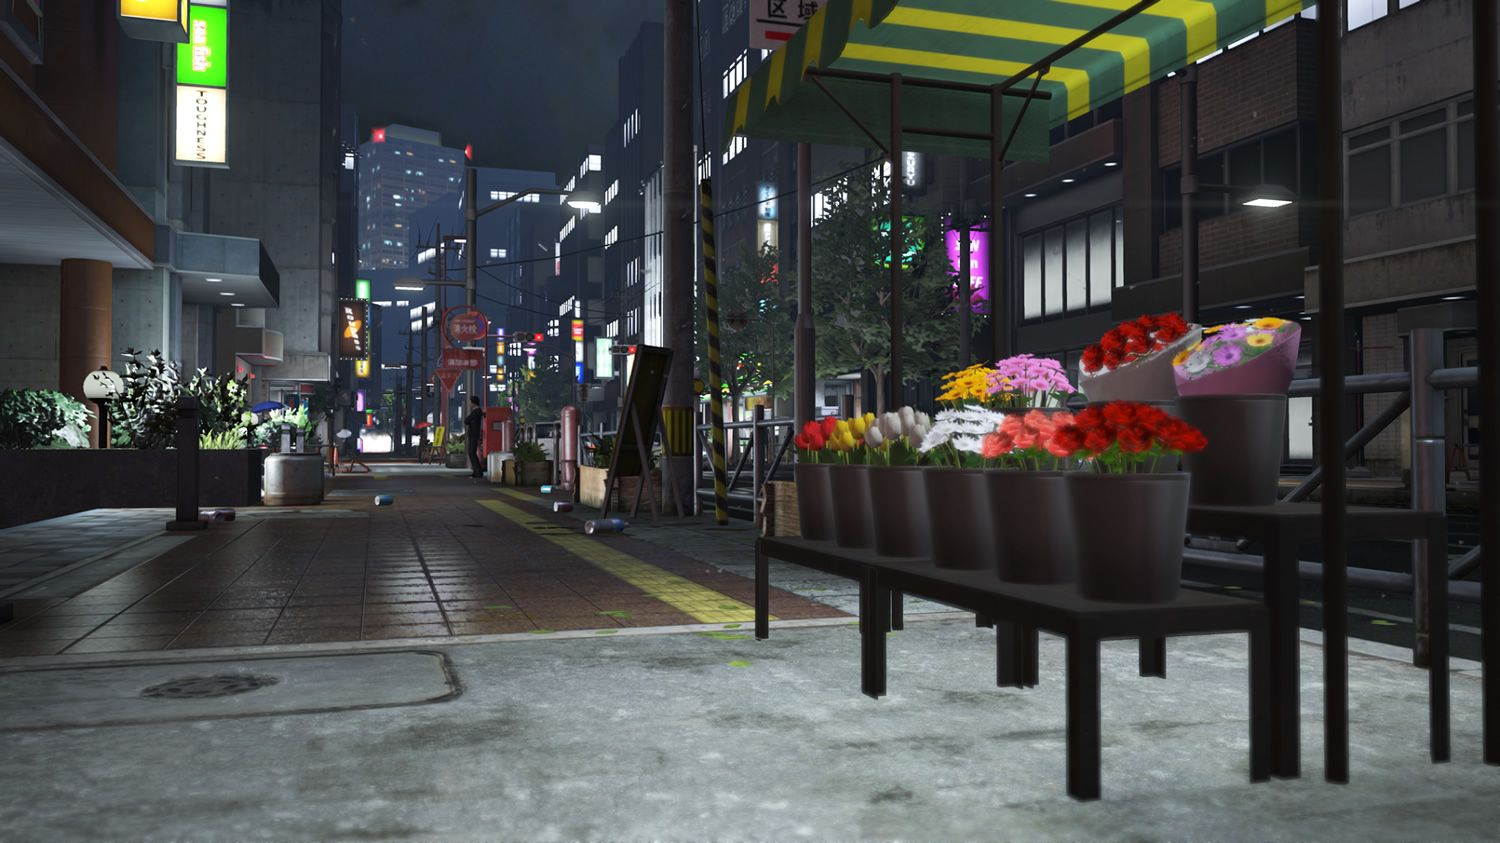 project-city-shrouded-in-shadow-granzella-bandai-namco-prime-immagini-02